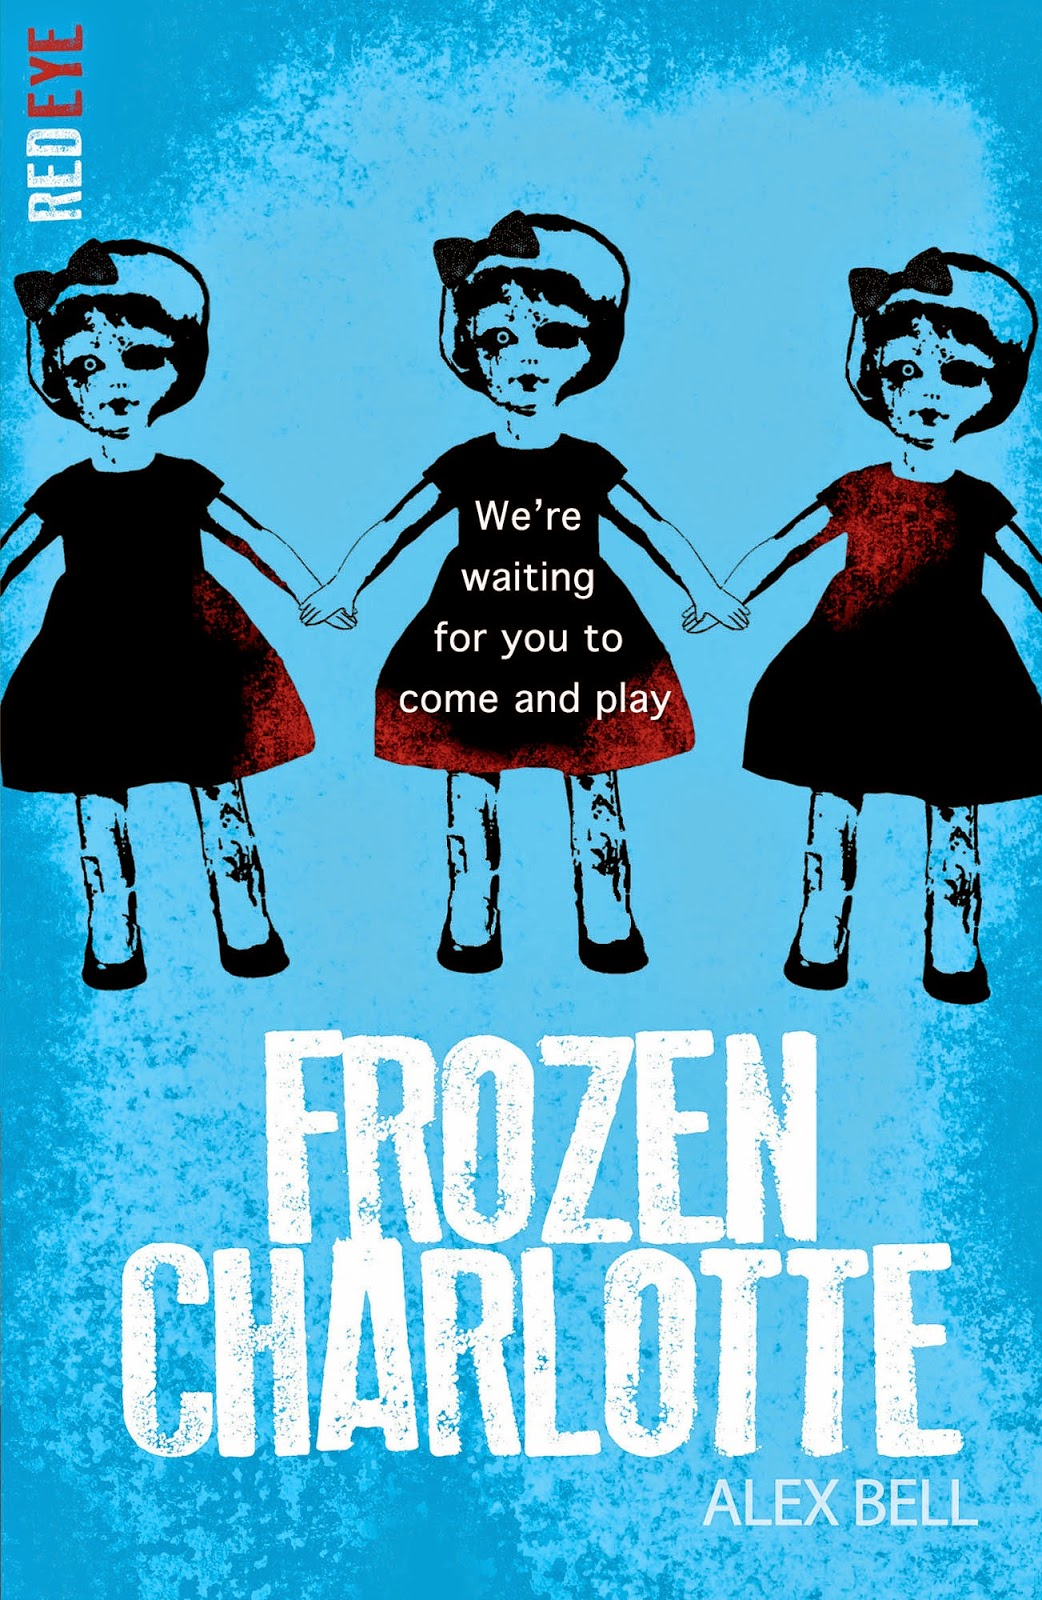 http://www.amazon.co.uk/Frozen-Charlotte-Red-Alex-Bell/dp/1847154530/ref=sr_1_1?s=books&ie=UTF8&qid=1417005334&sr=1-1&keywords=frozen+charlotte#customerReviews